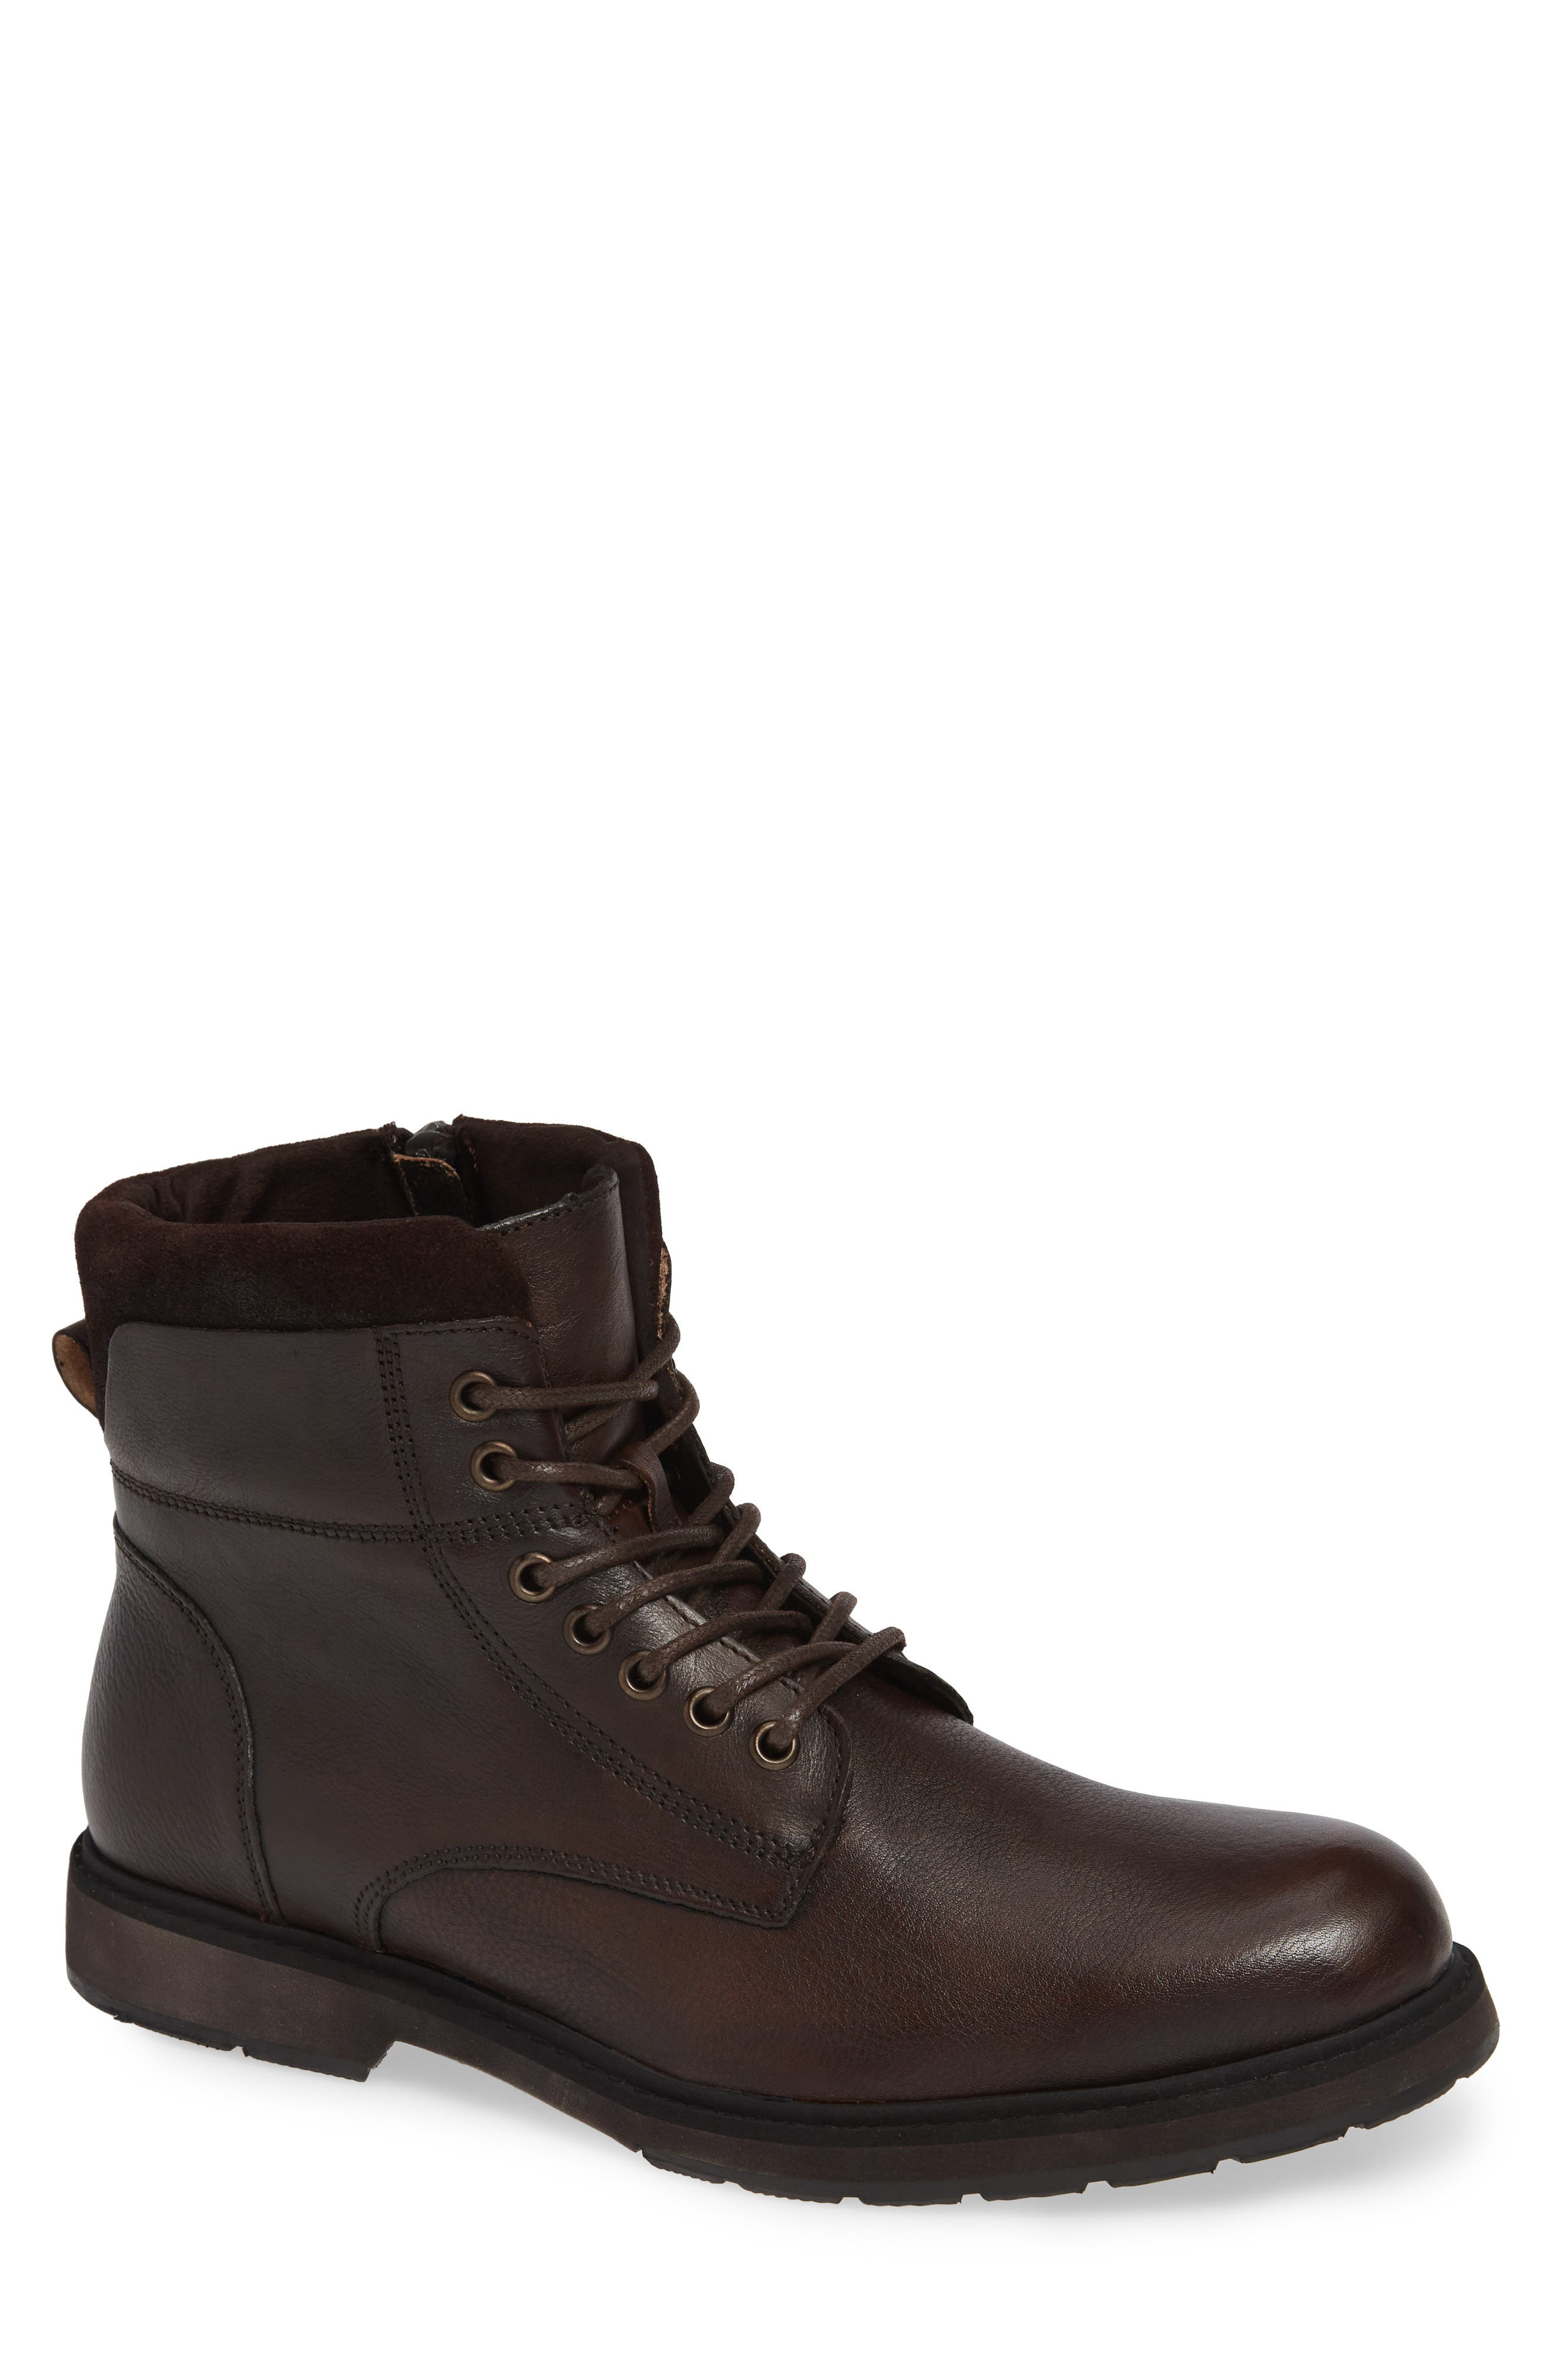 REACTION KENNETH COLE, Drue Pebbled Combat Boot, Main thumbnail 1, color, BROWN LEATHER